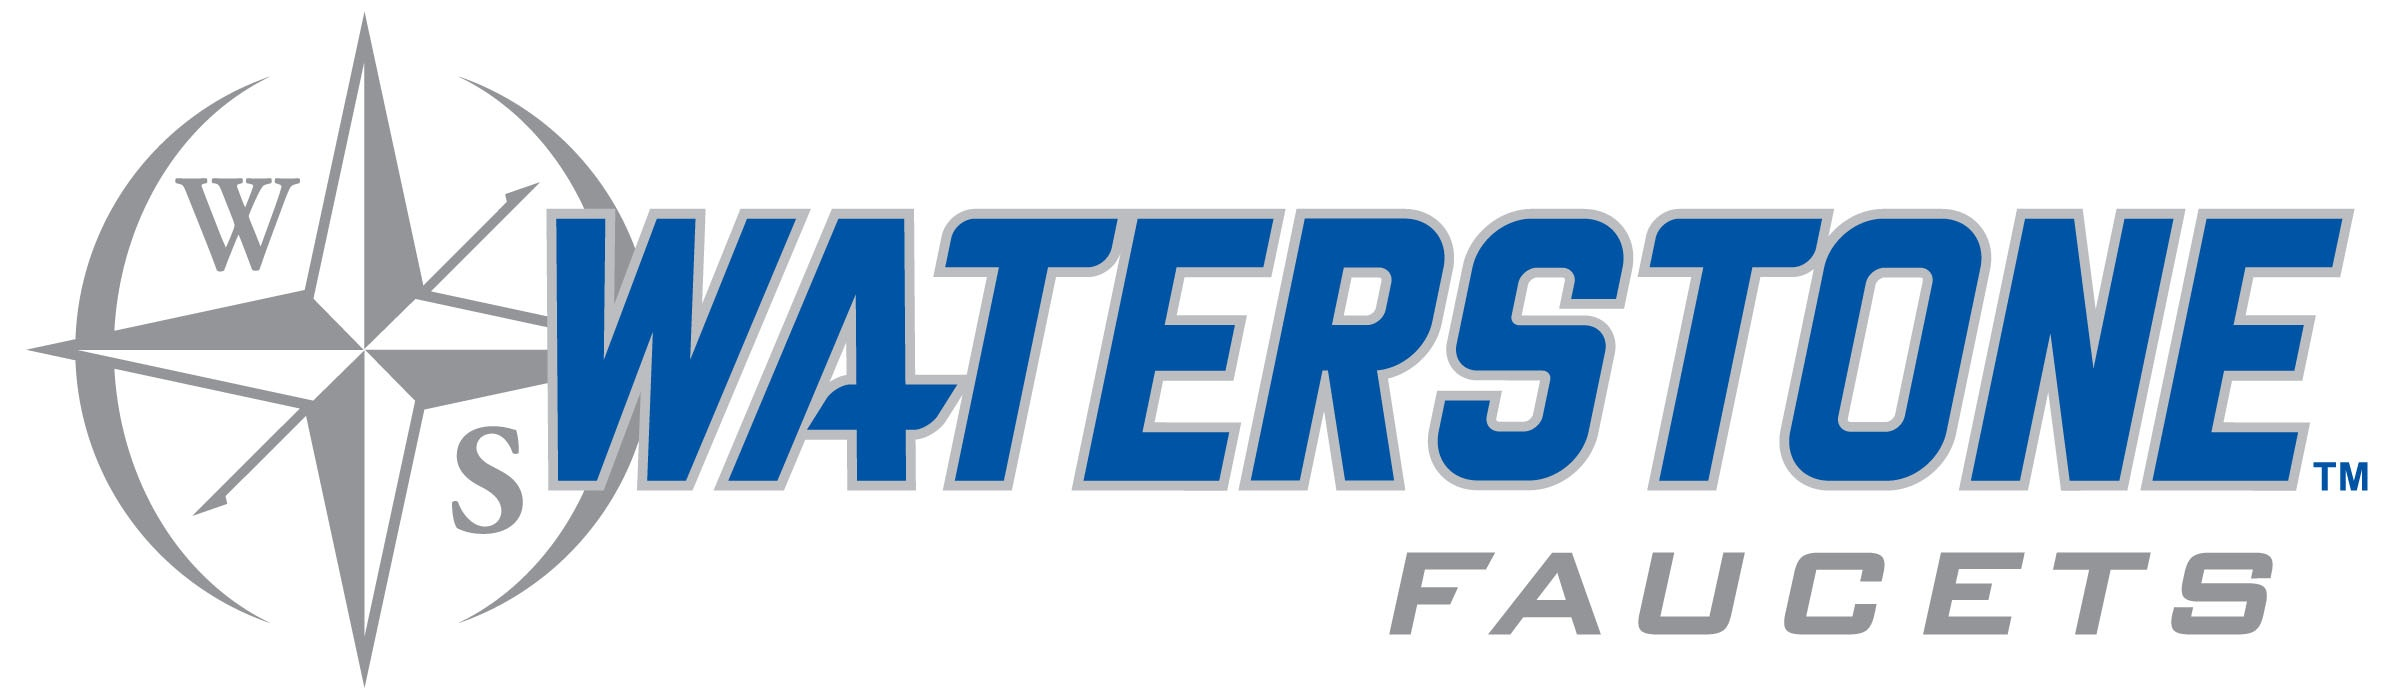 Waterstone Faucets logo